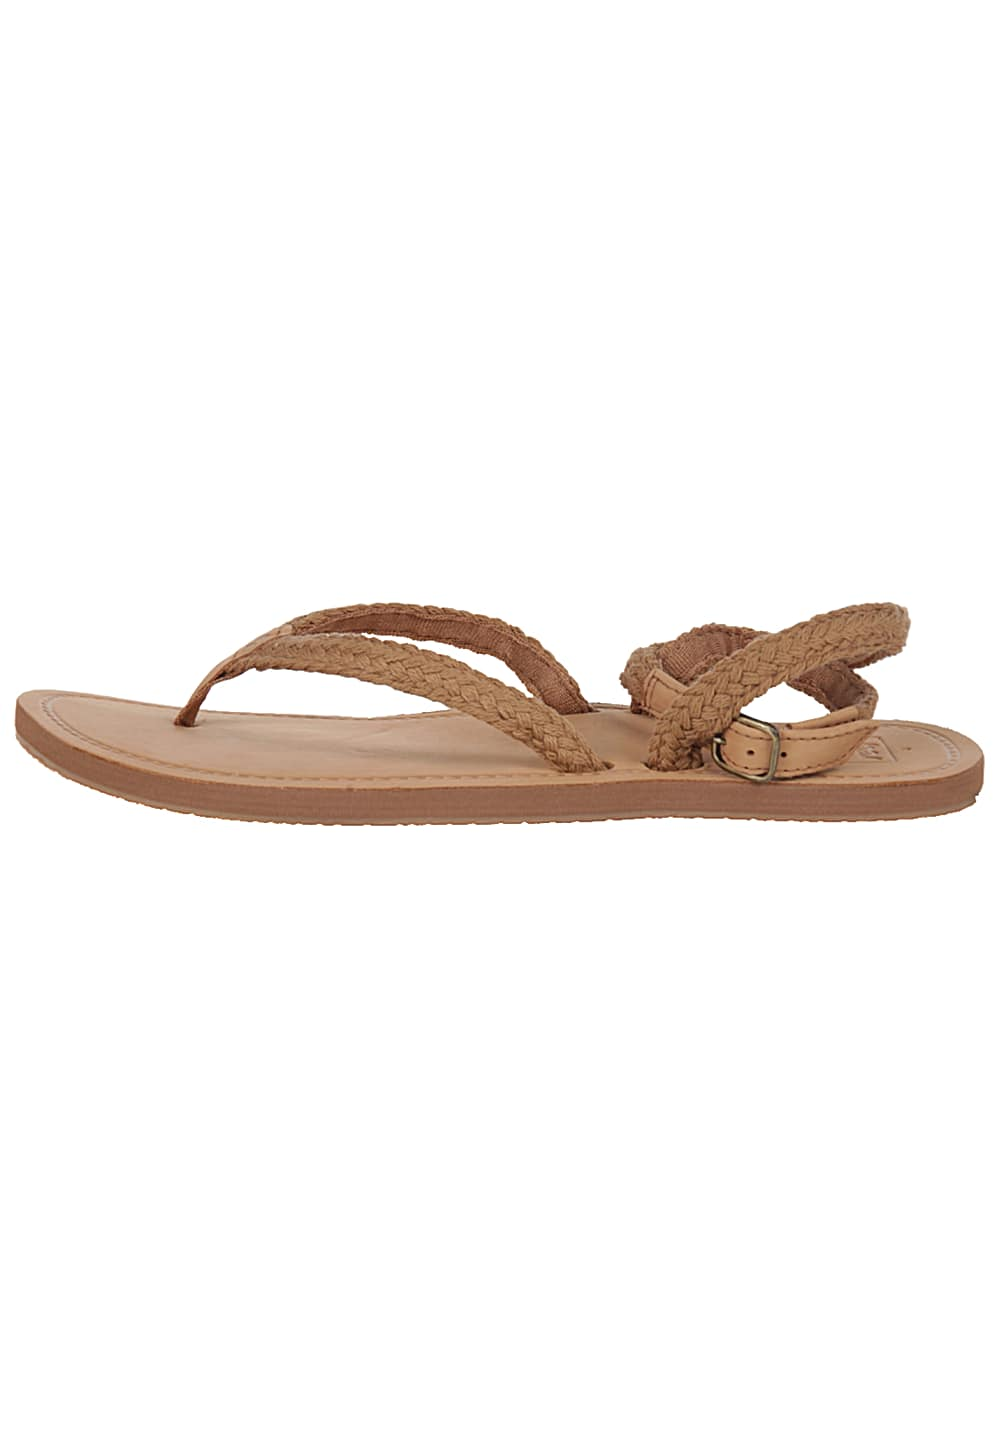 1e1c5562e0de ... Reef Gypsy Wrap - Sandals for Women - Brown. Back to Overview. 1  2  3.  Previous. Next